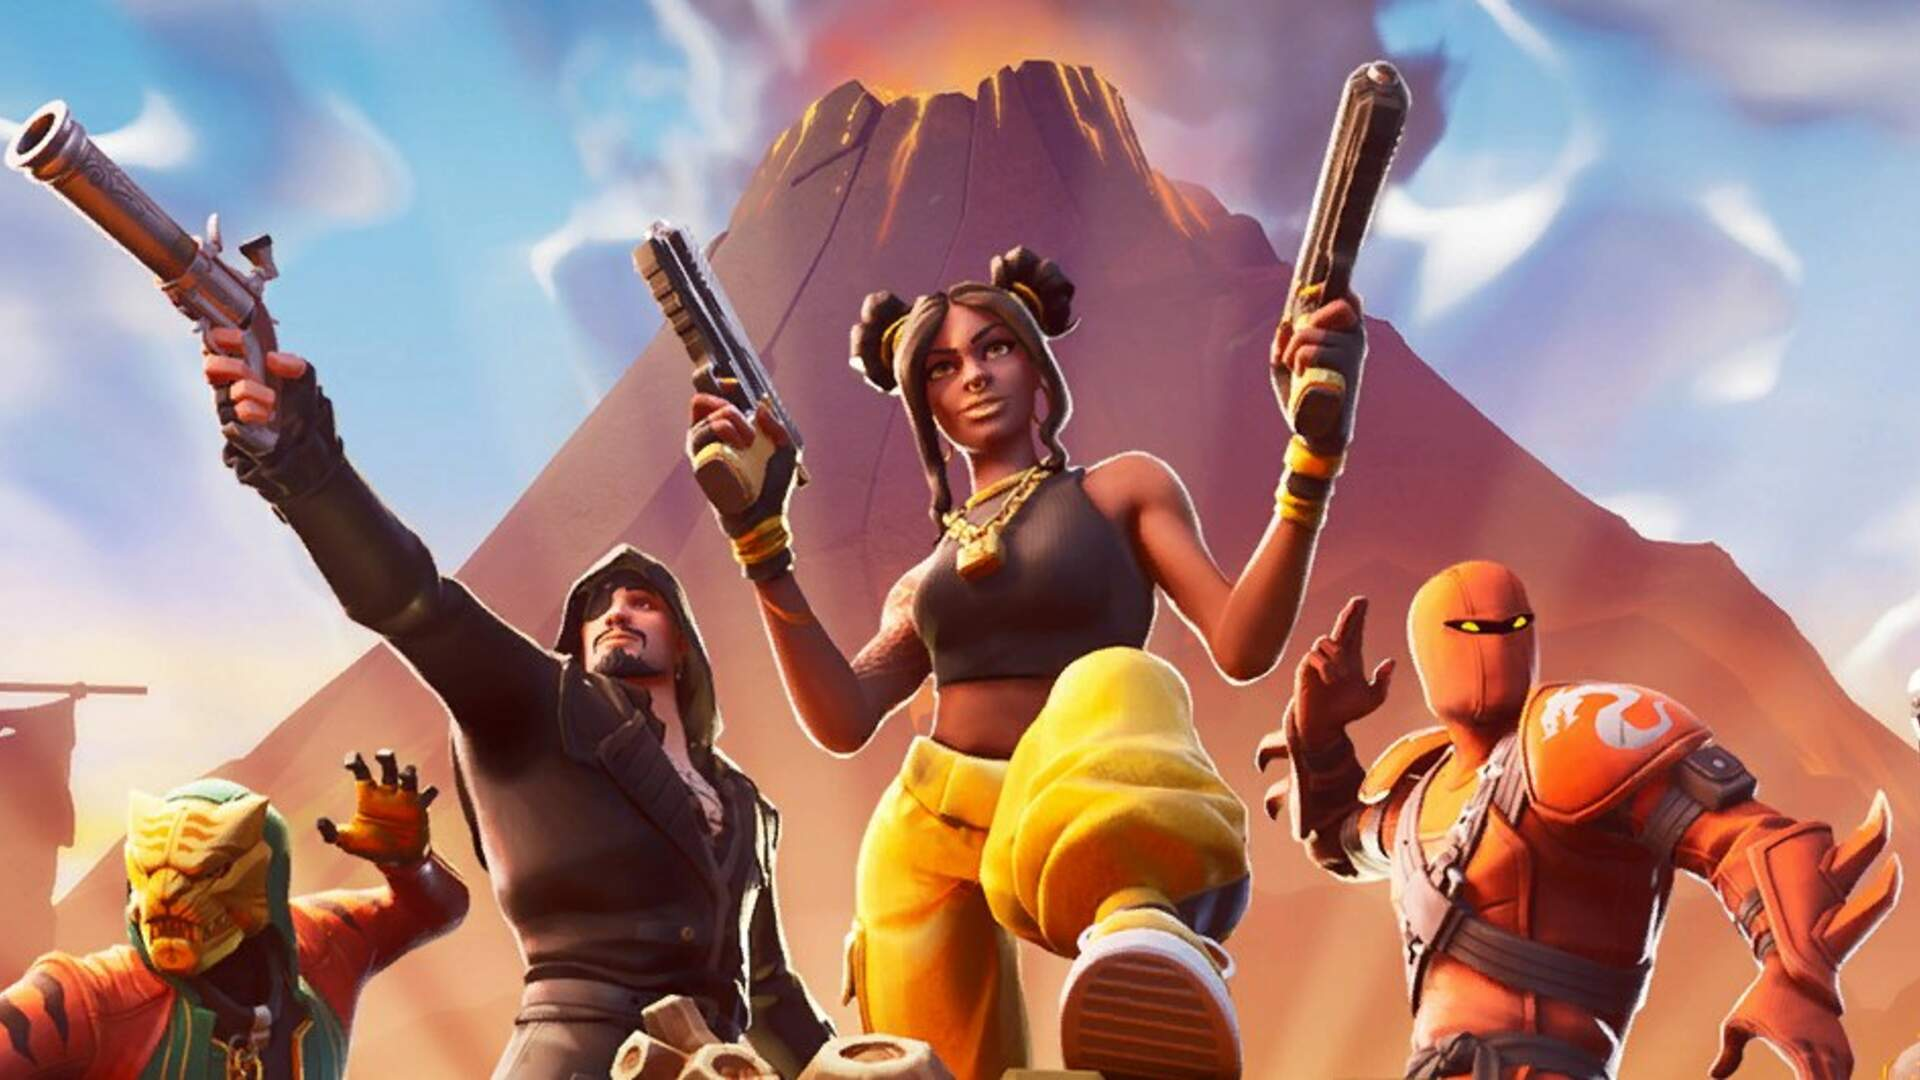 Fortnite Season 8 Skins - New Fortnite Season 8 Battle Pass Skins